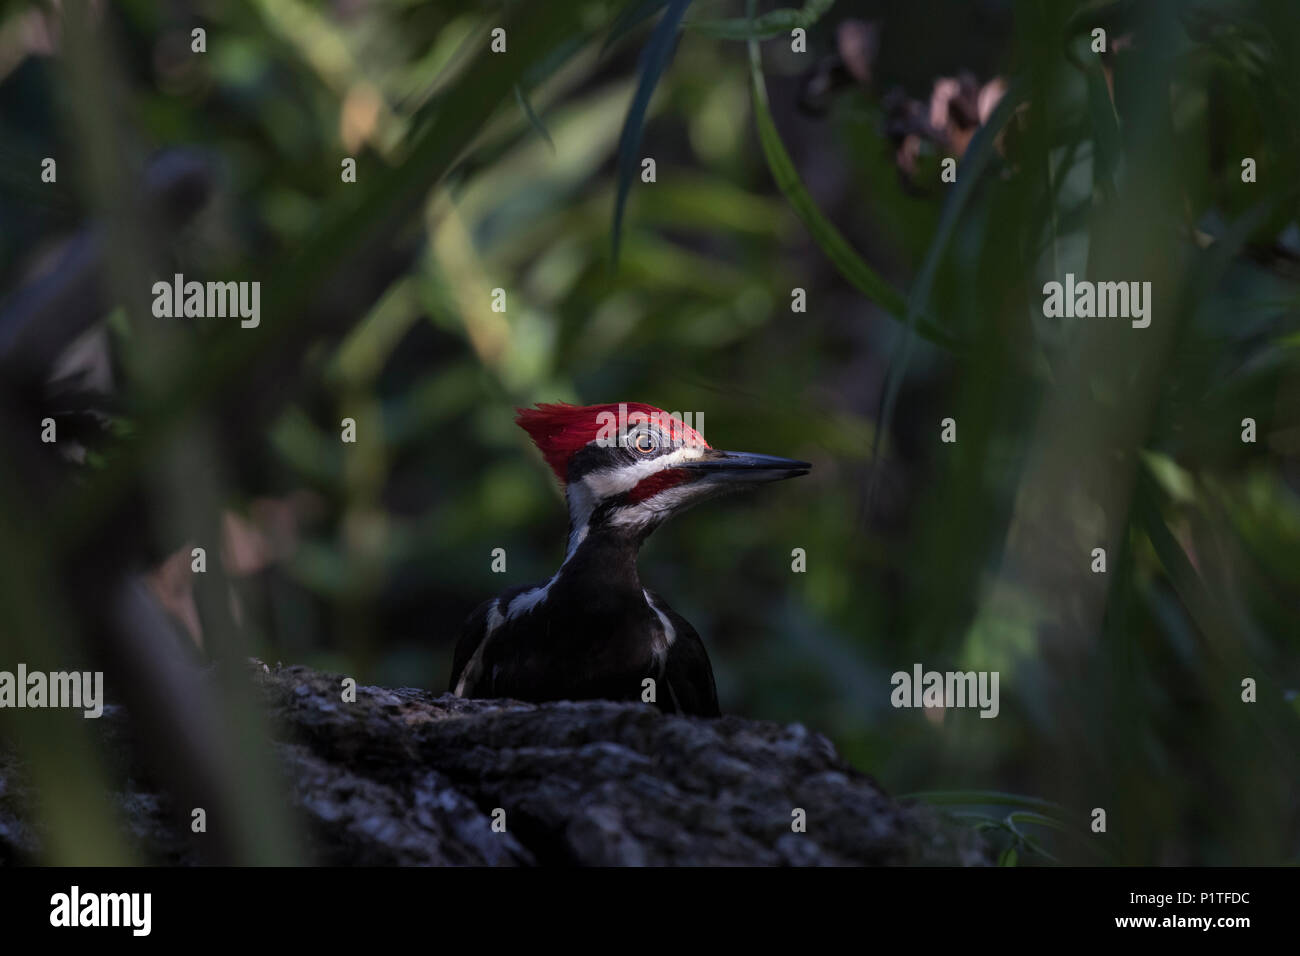 A male pileated woodpecker (Dryocopus pileatus) pauses his search for grubs on a downed log on the forest floor in Florida. - Stock Image